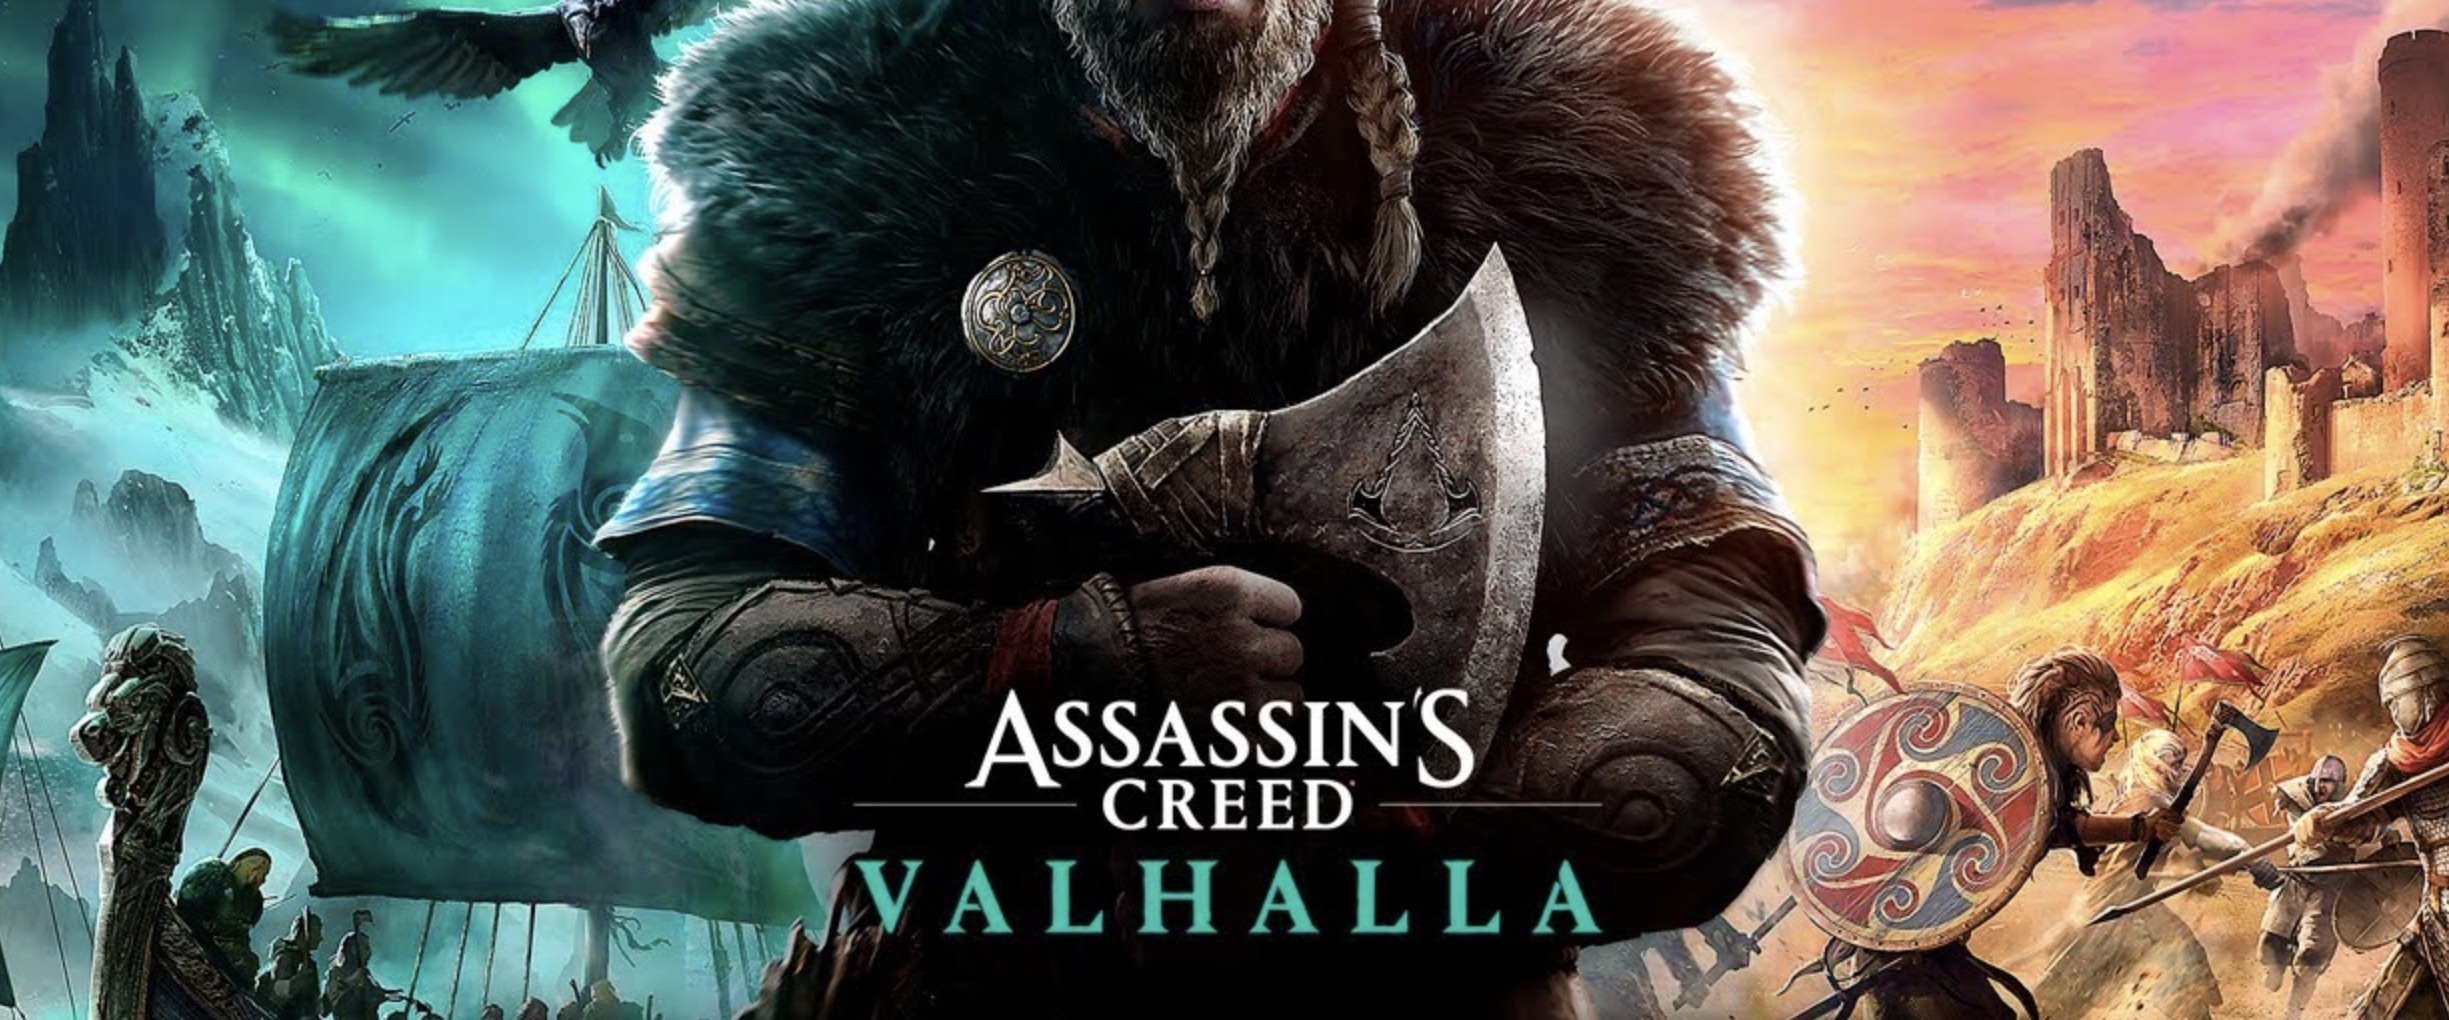 https://www.julientellouck.com/wp-content/uploads/2020/04/news_assassins_creed_valhalla_annonce_direction_vikings.jpg